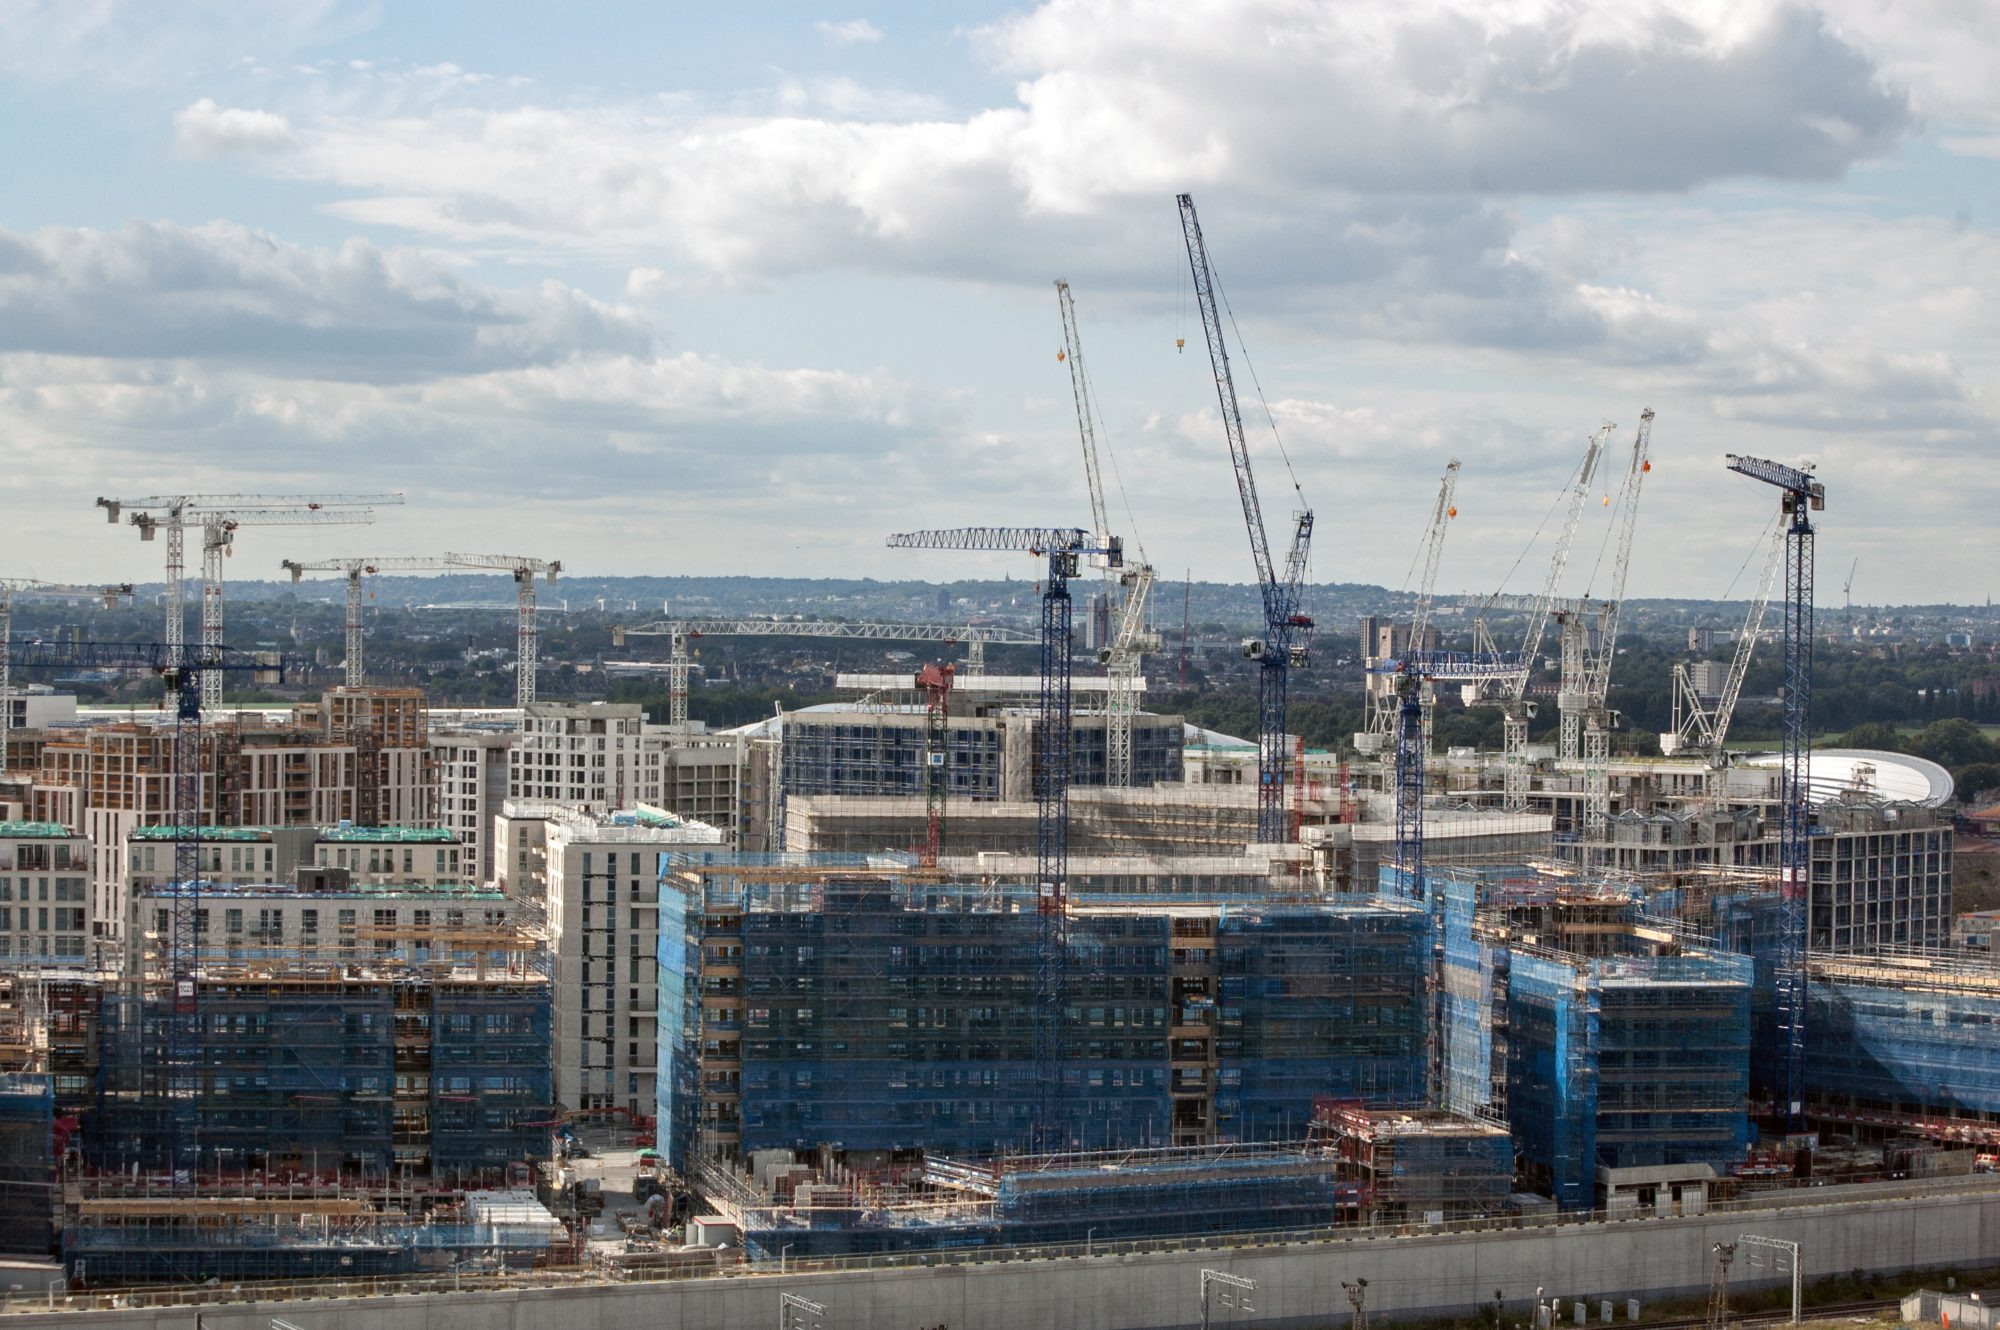 Commercial work offers relief for UK construction in February